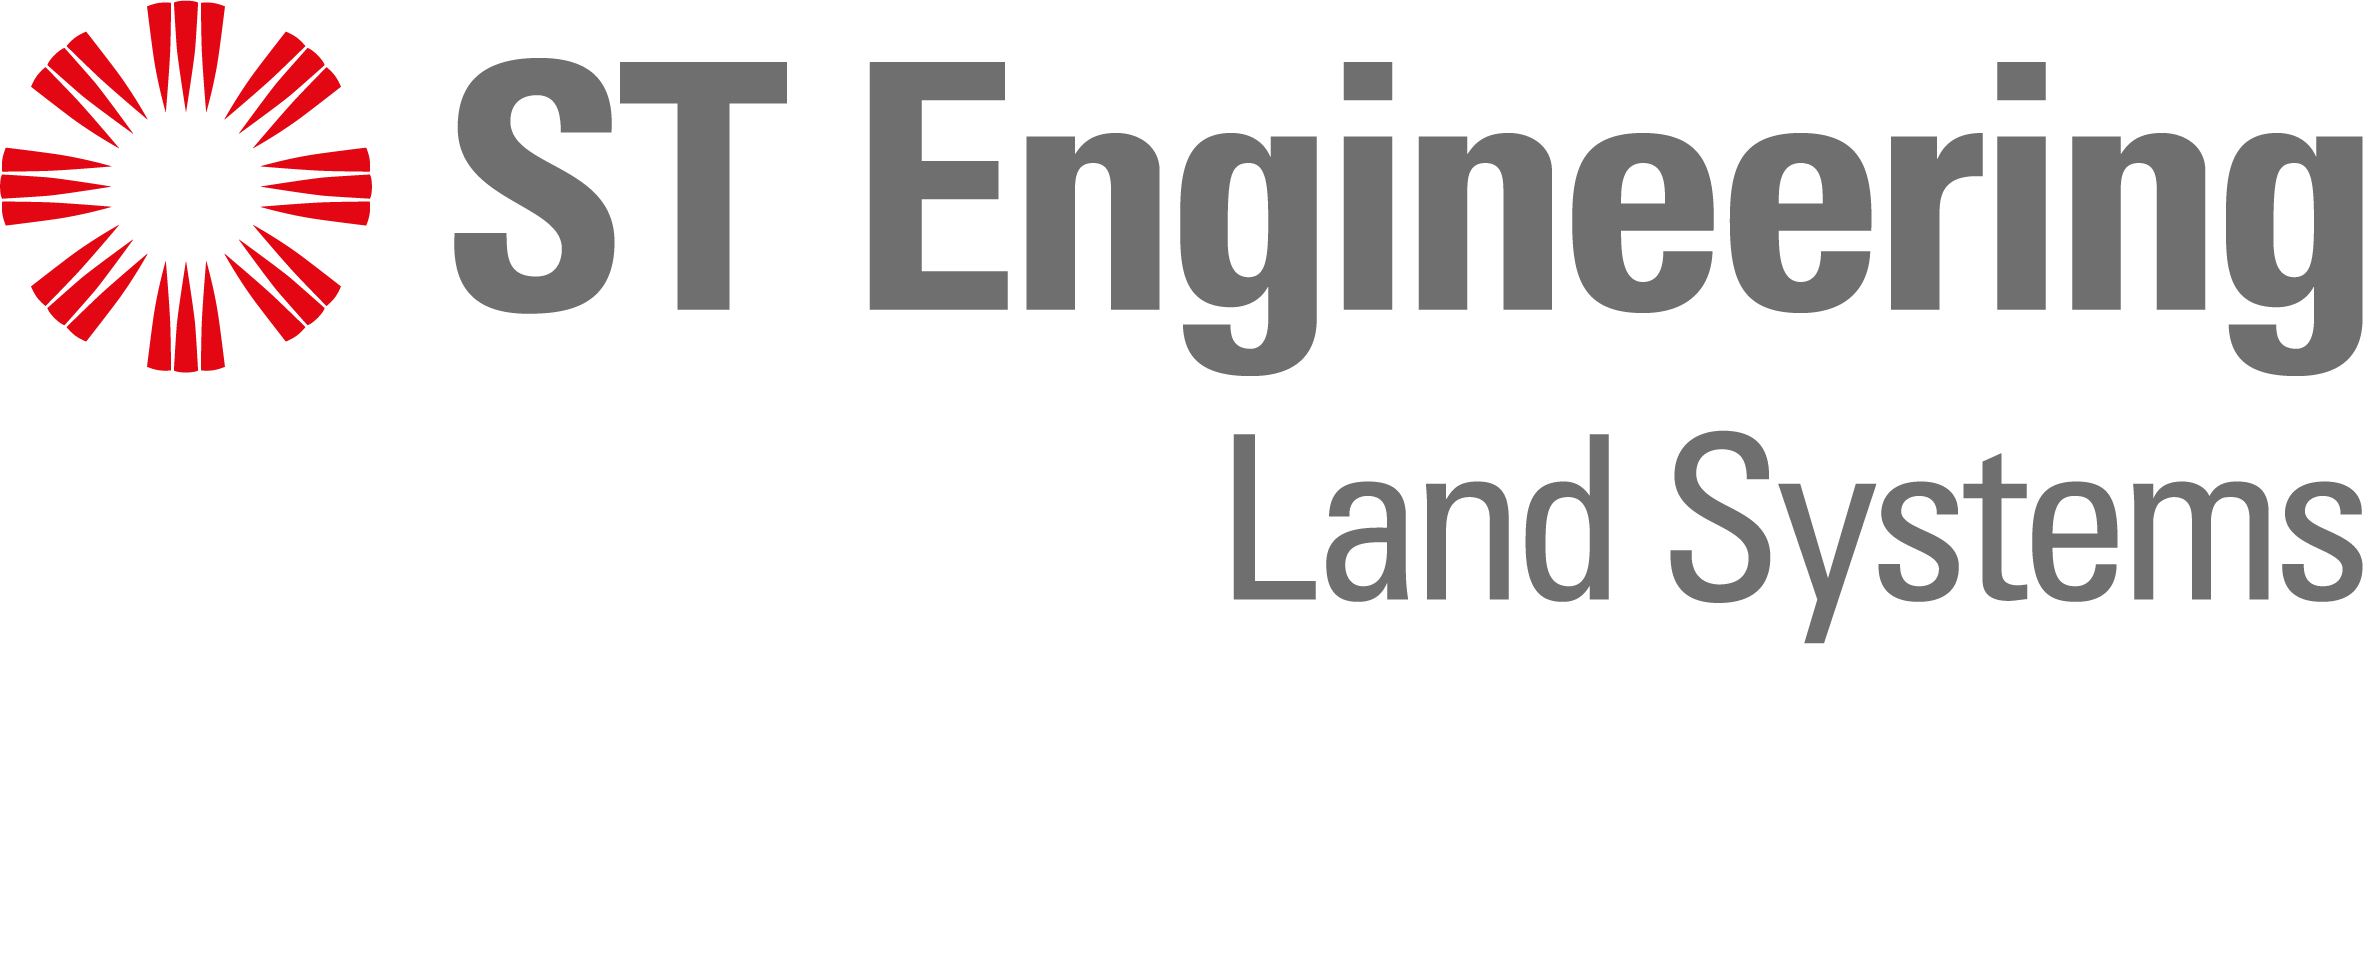 ST Engineering Land Systems Logo